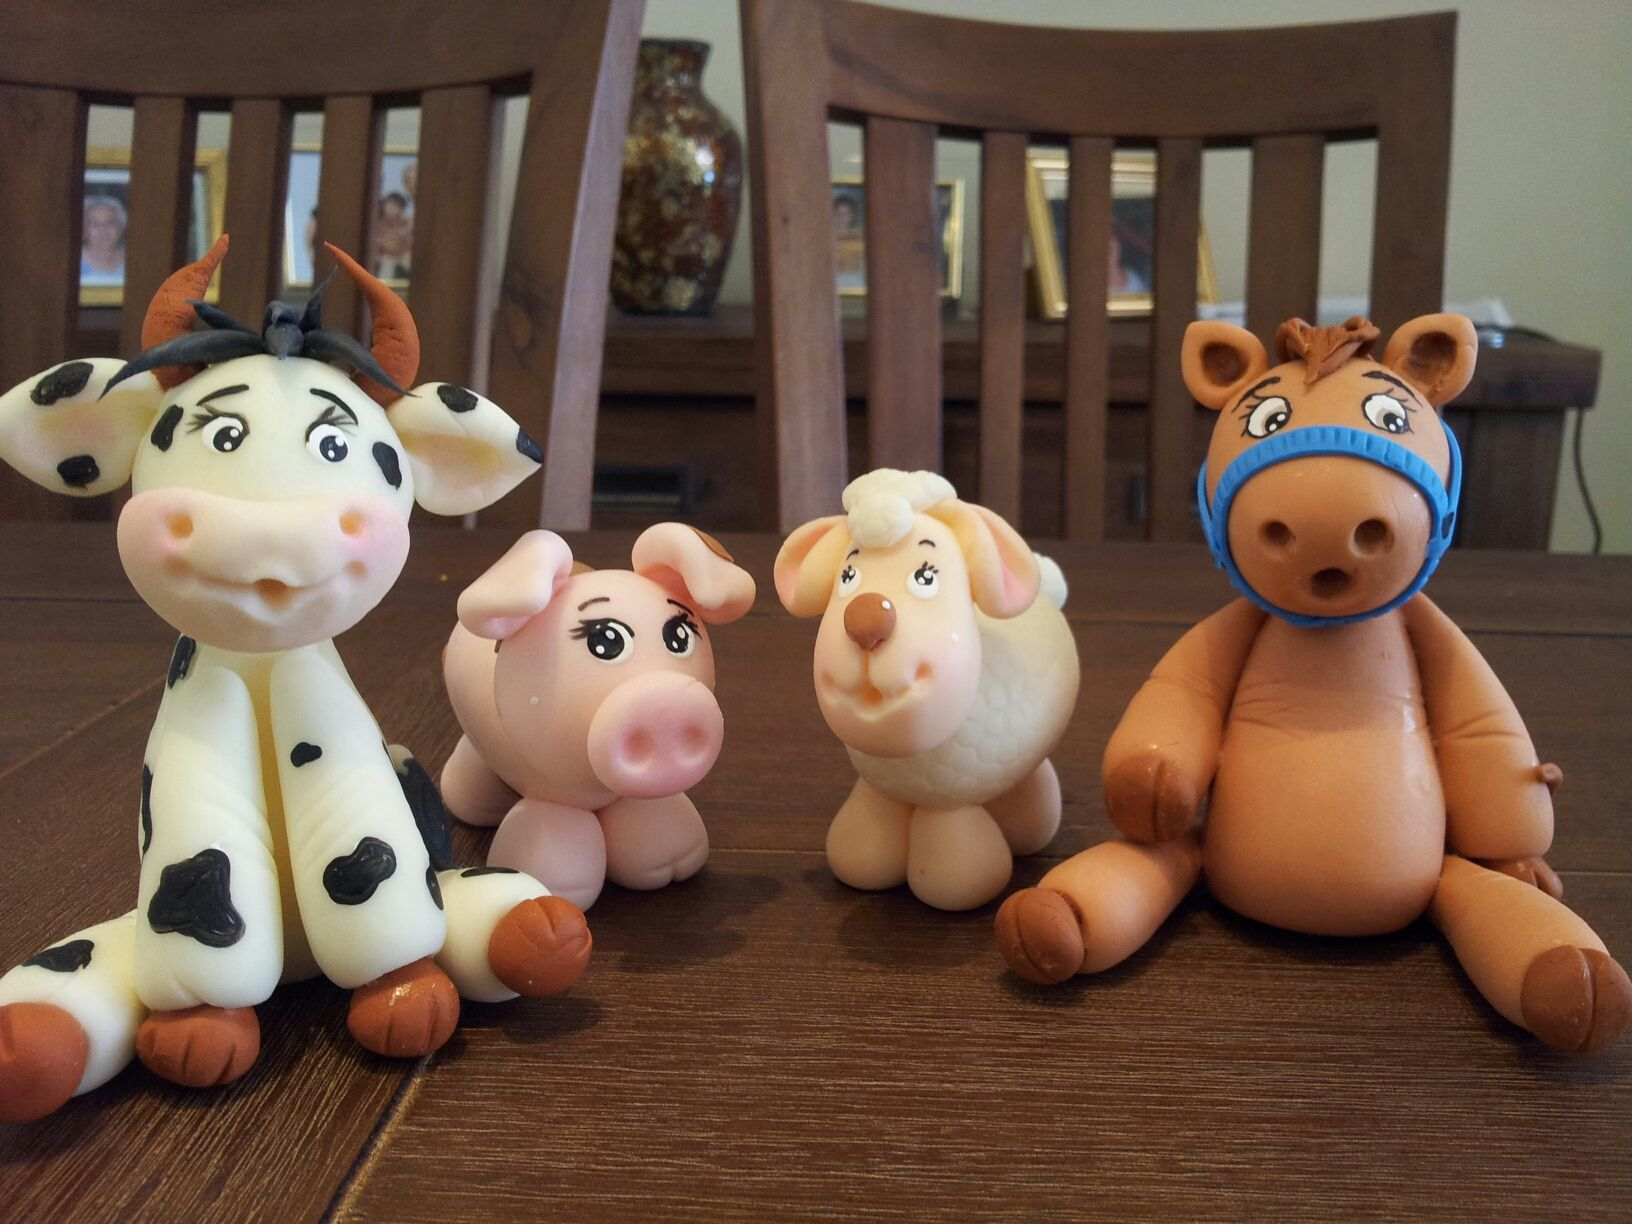 Barn with farm animals cake topper fondant or cold porcelain